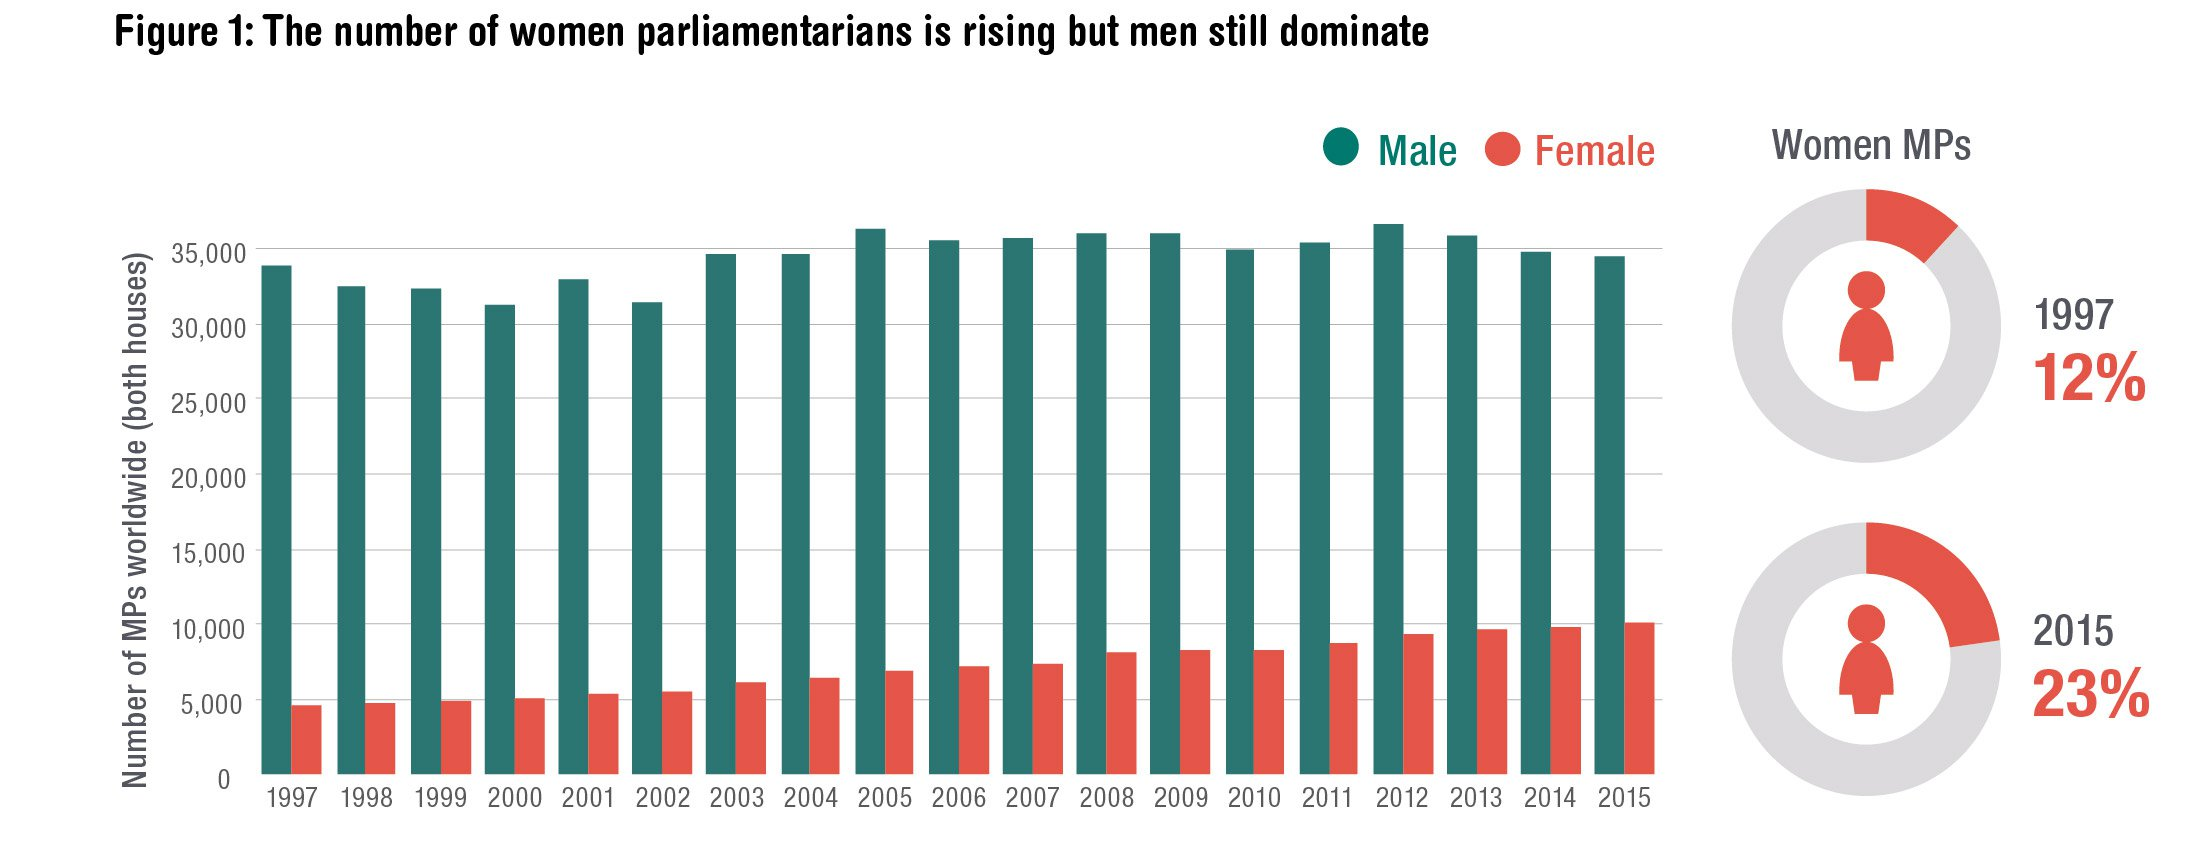 The number of women in parliament is rising, but men still dominate. Source: ODI